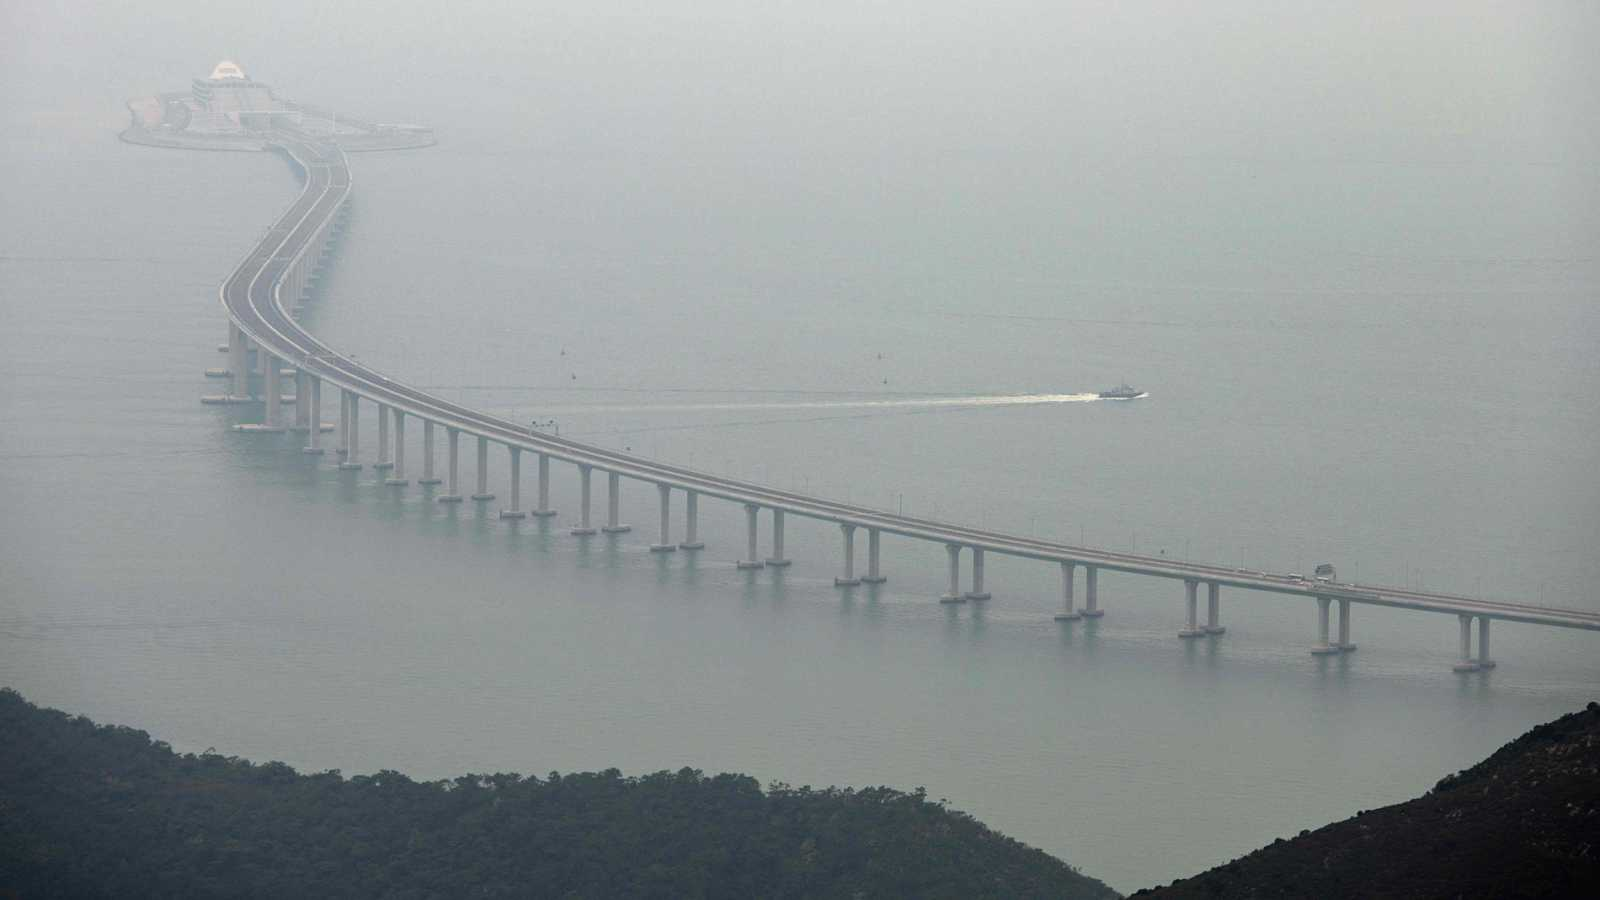 China inaugura el mayor viaducto sobre el mar del mundo, que la une con Macao y Hong Kong